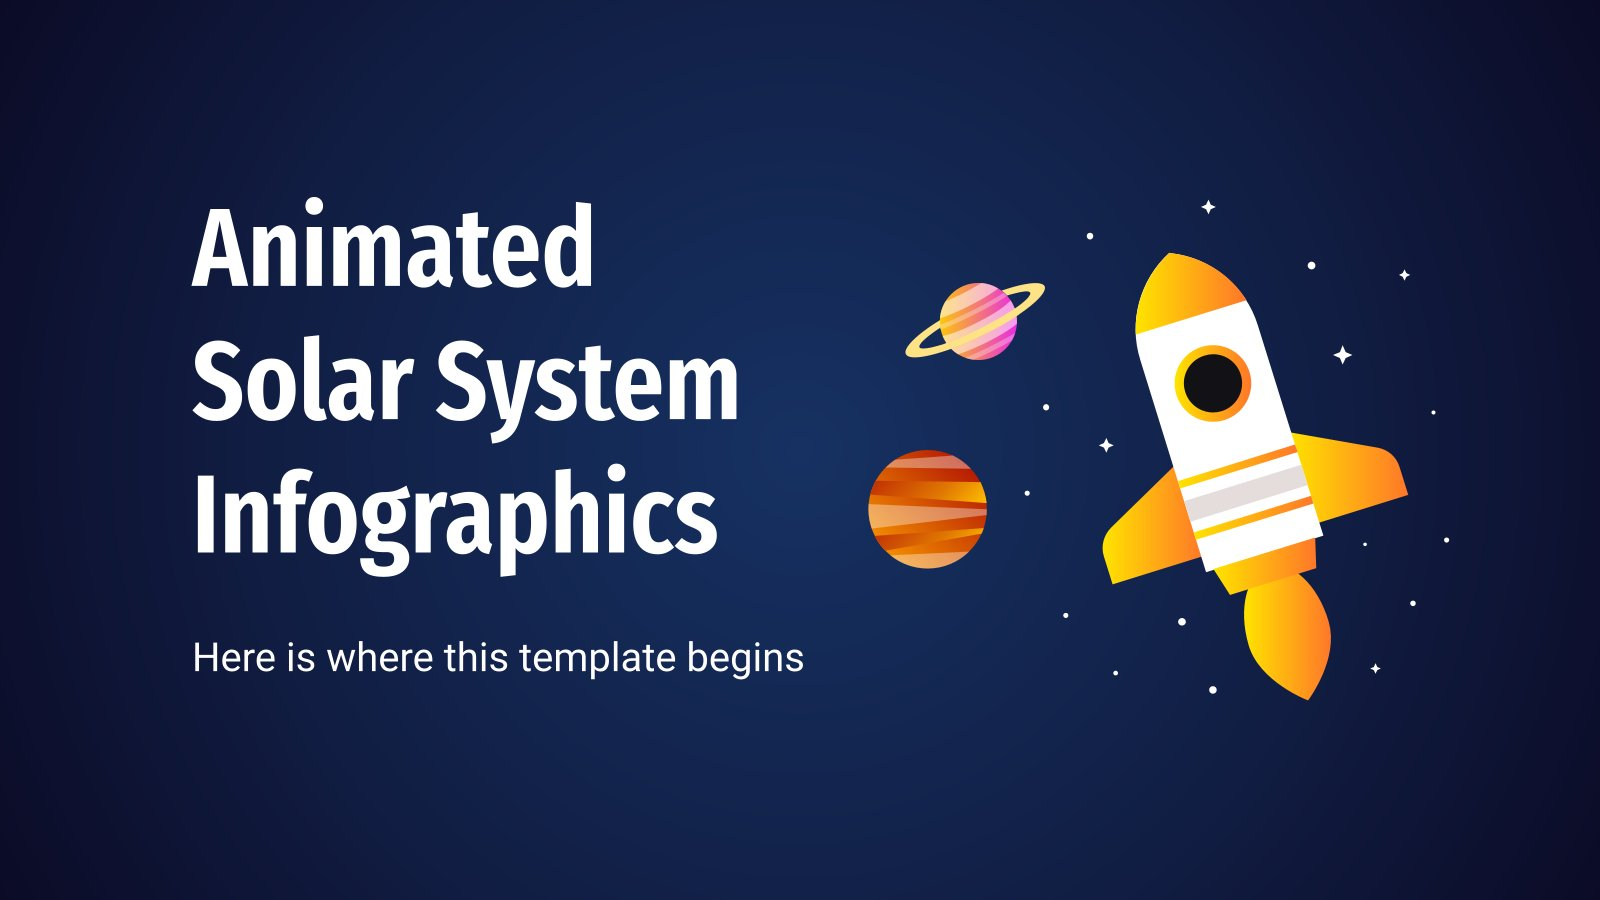 Animated Solar System Infographics presentation template